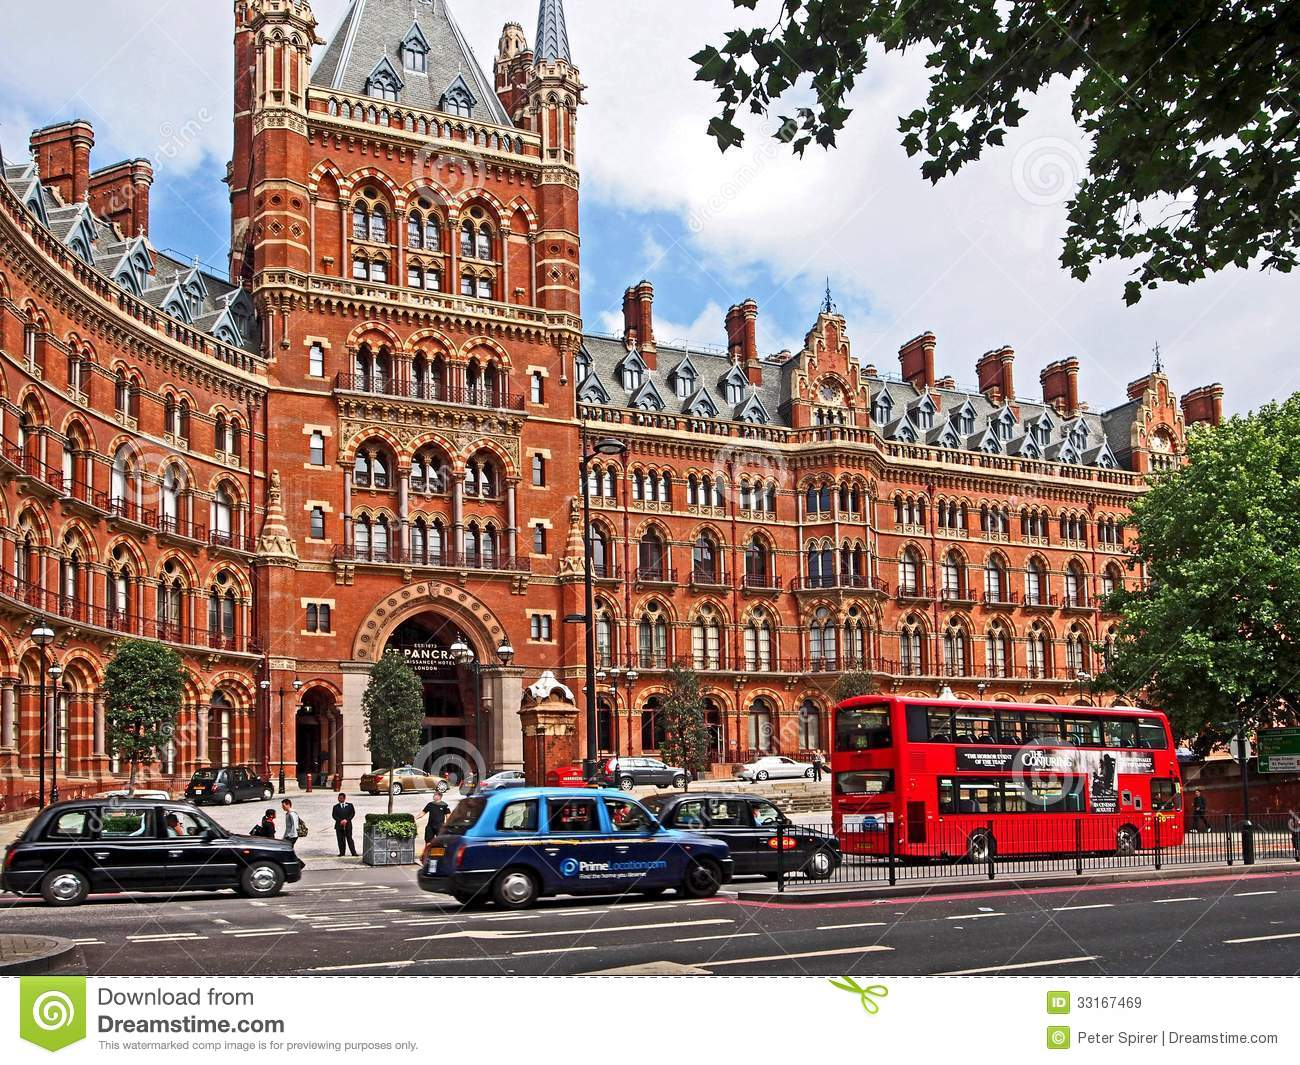 london st pancras railway station hotel editorial stock image image of building hotel 33167469. Black Bedroom Furniture Sets. Home Design Ideas